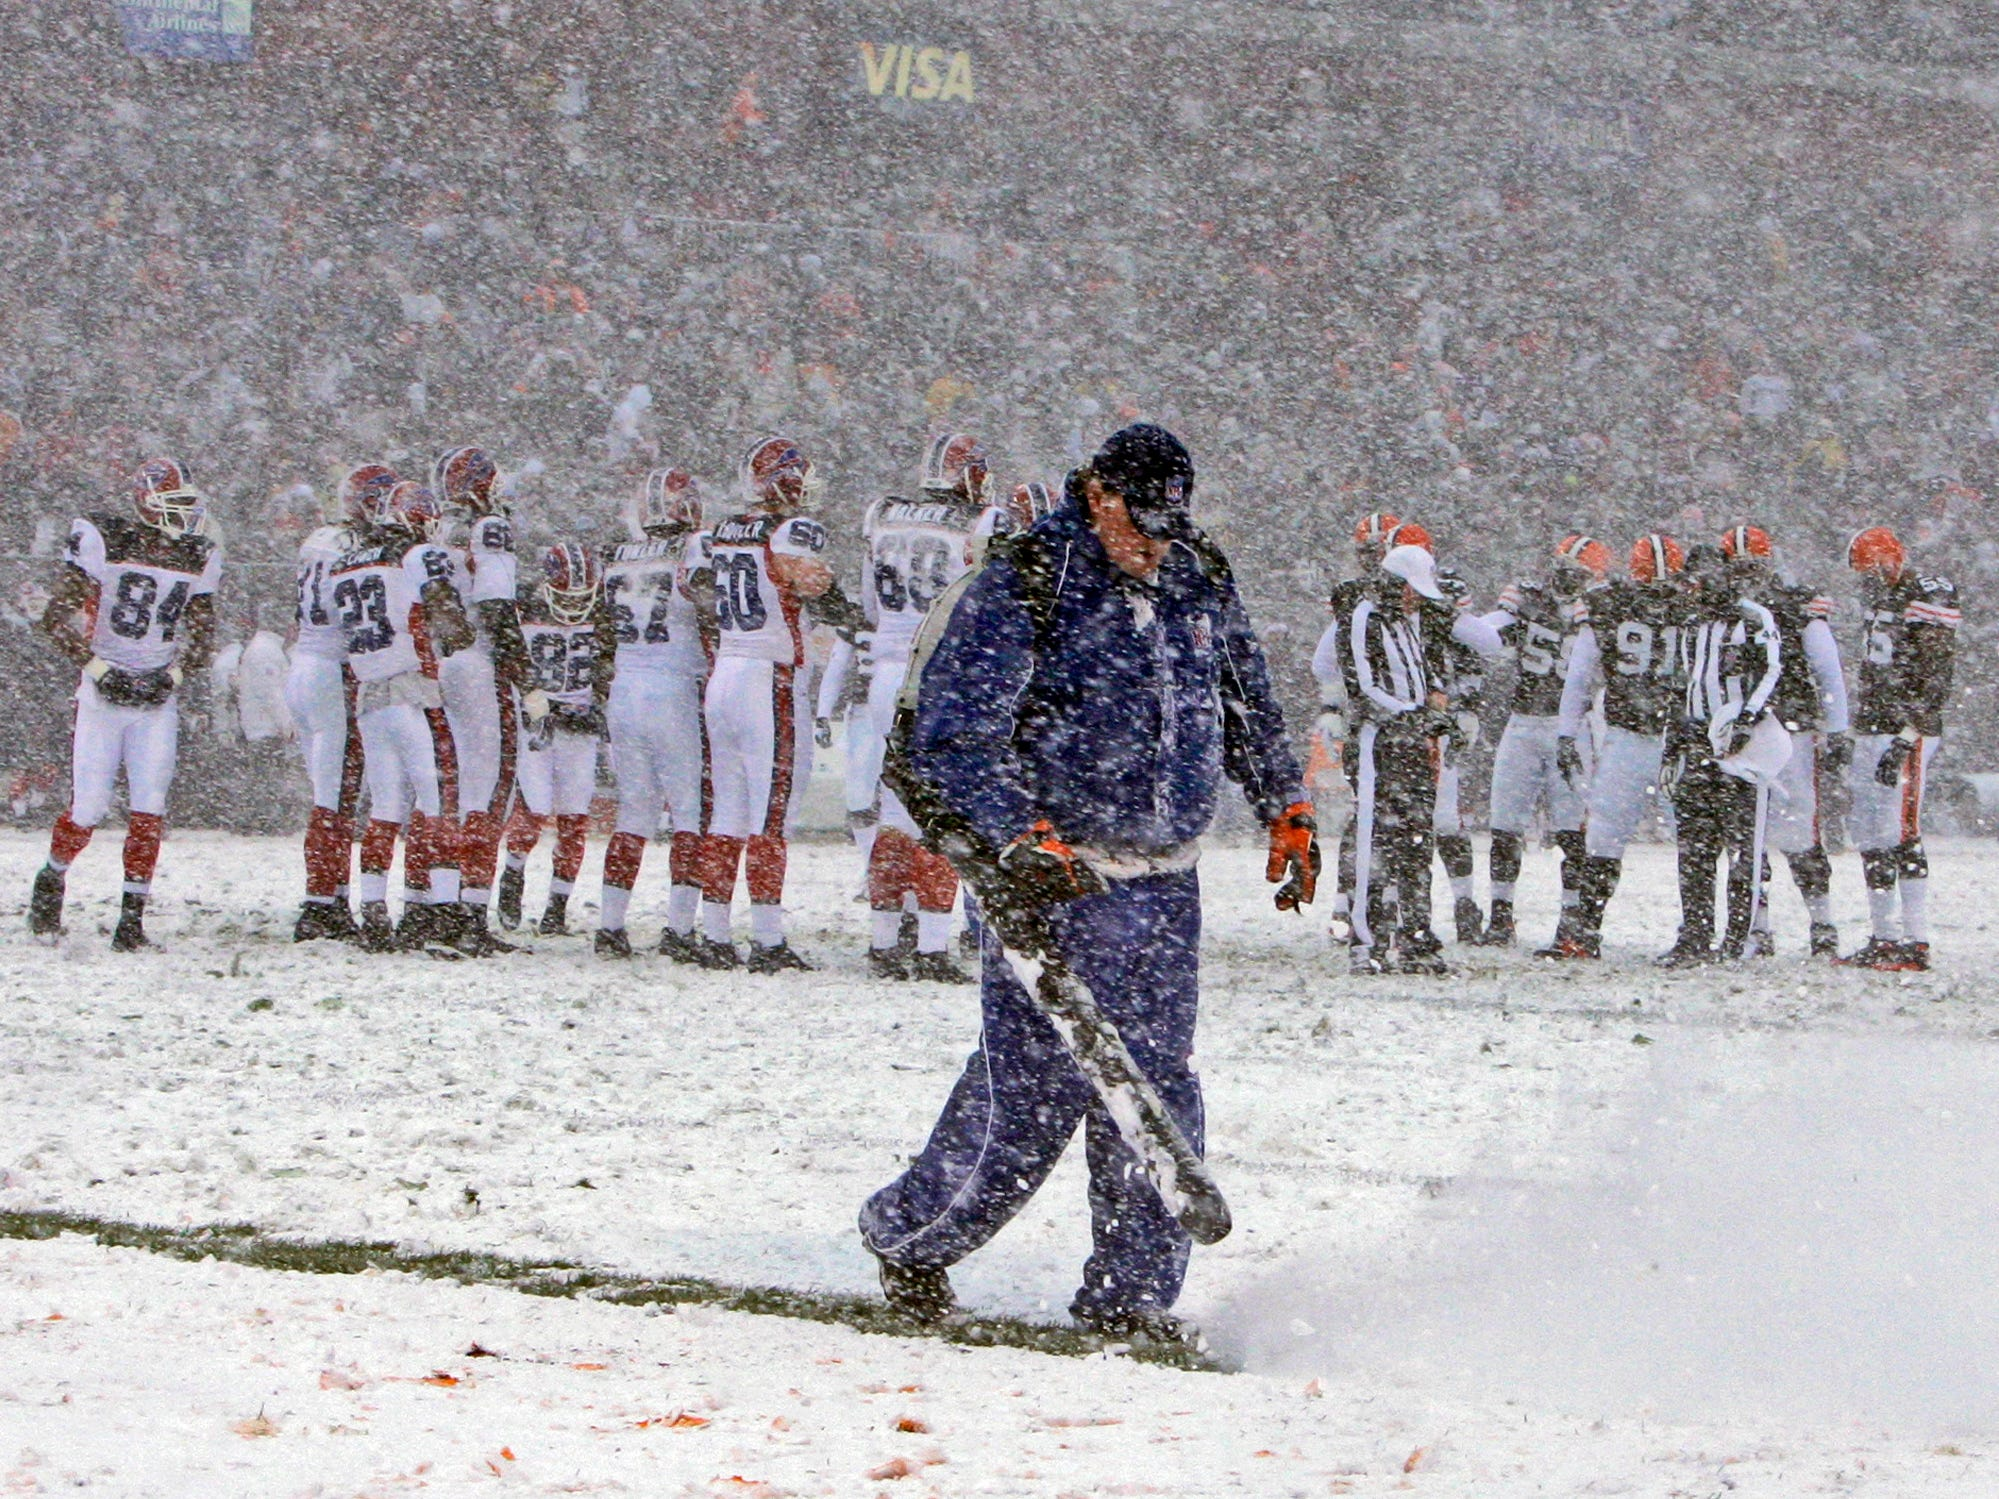 Dec. 16, 2007: A grounds crew worker blows snow off the field during a break in the action during the game between the Buffalo Bills and Cleveland Browns  in Cleveland. The Browns won the game, 8-0.